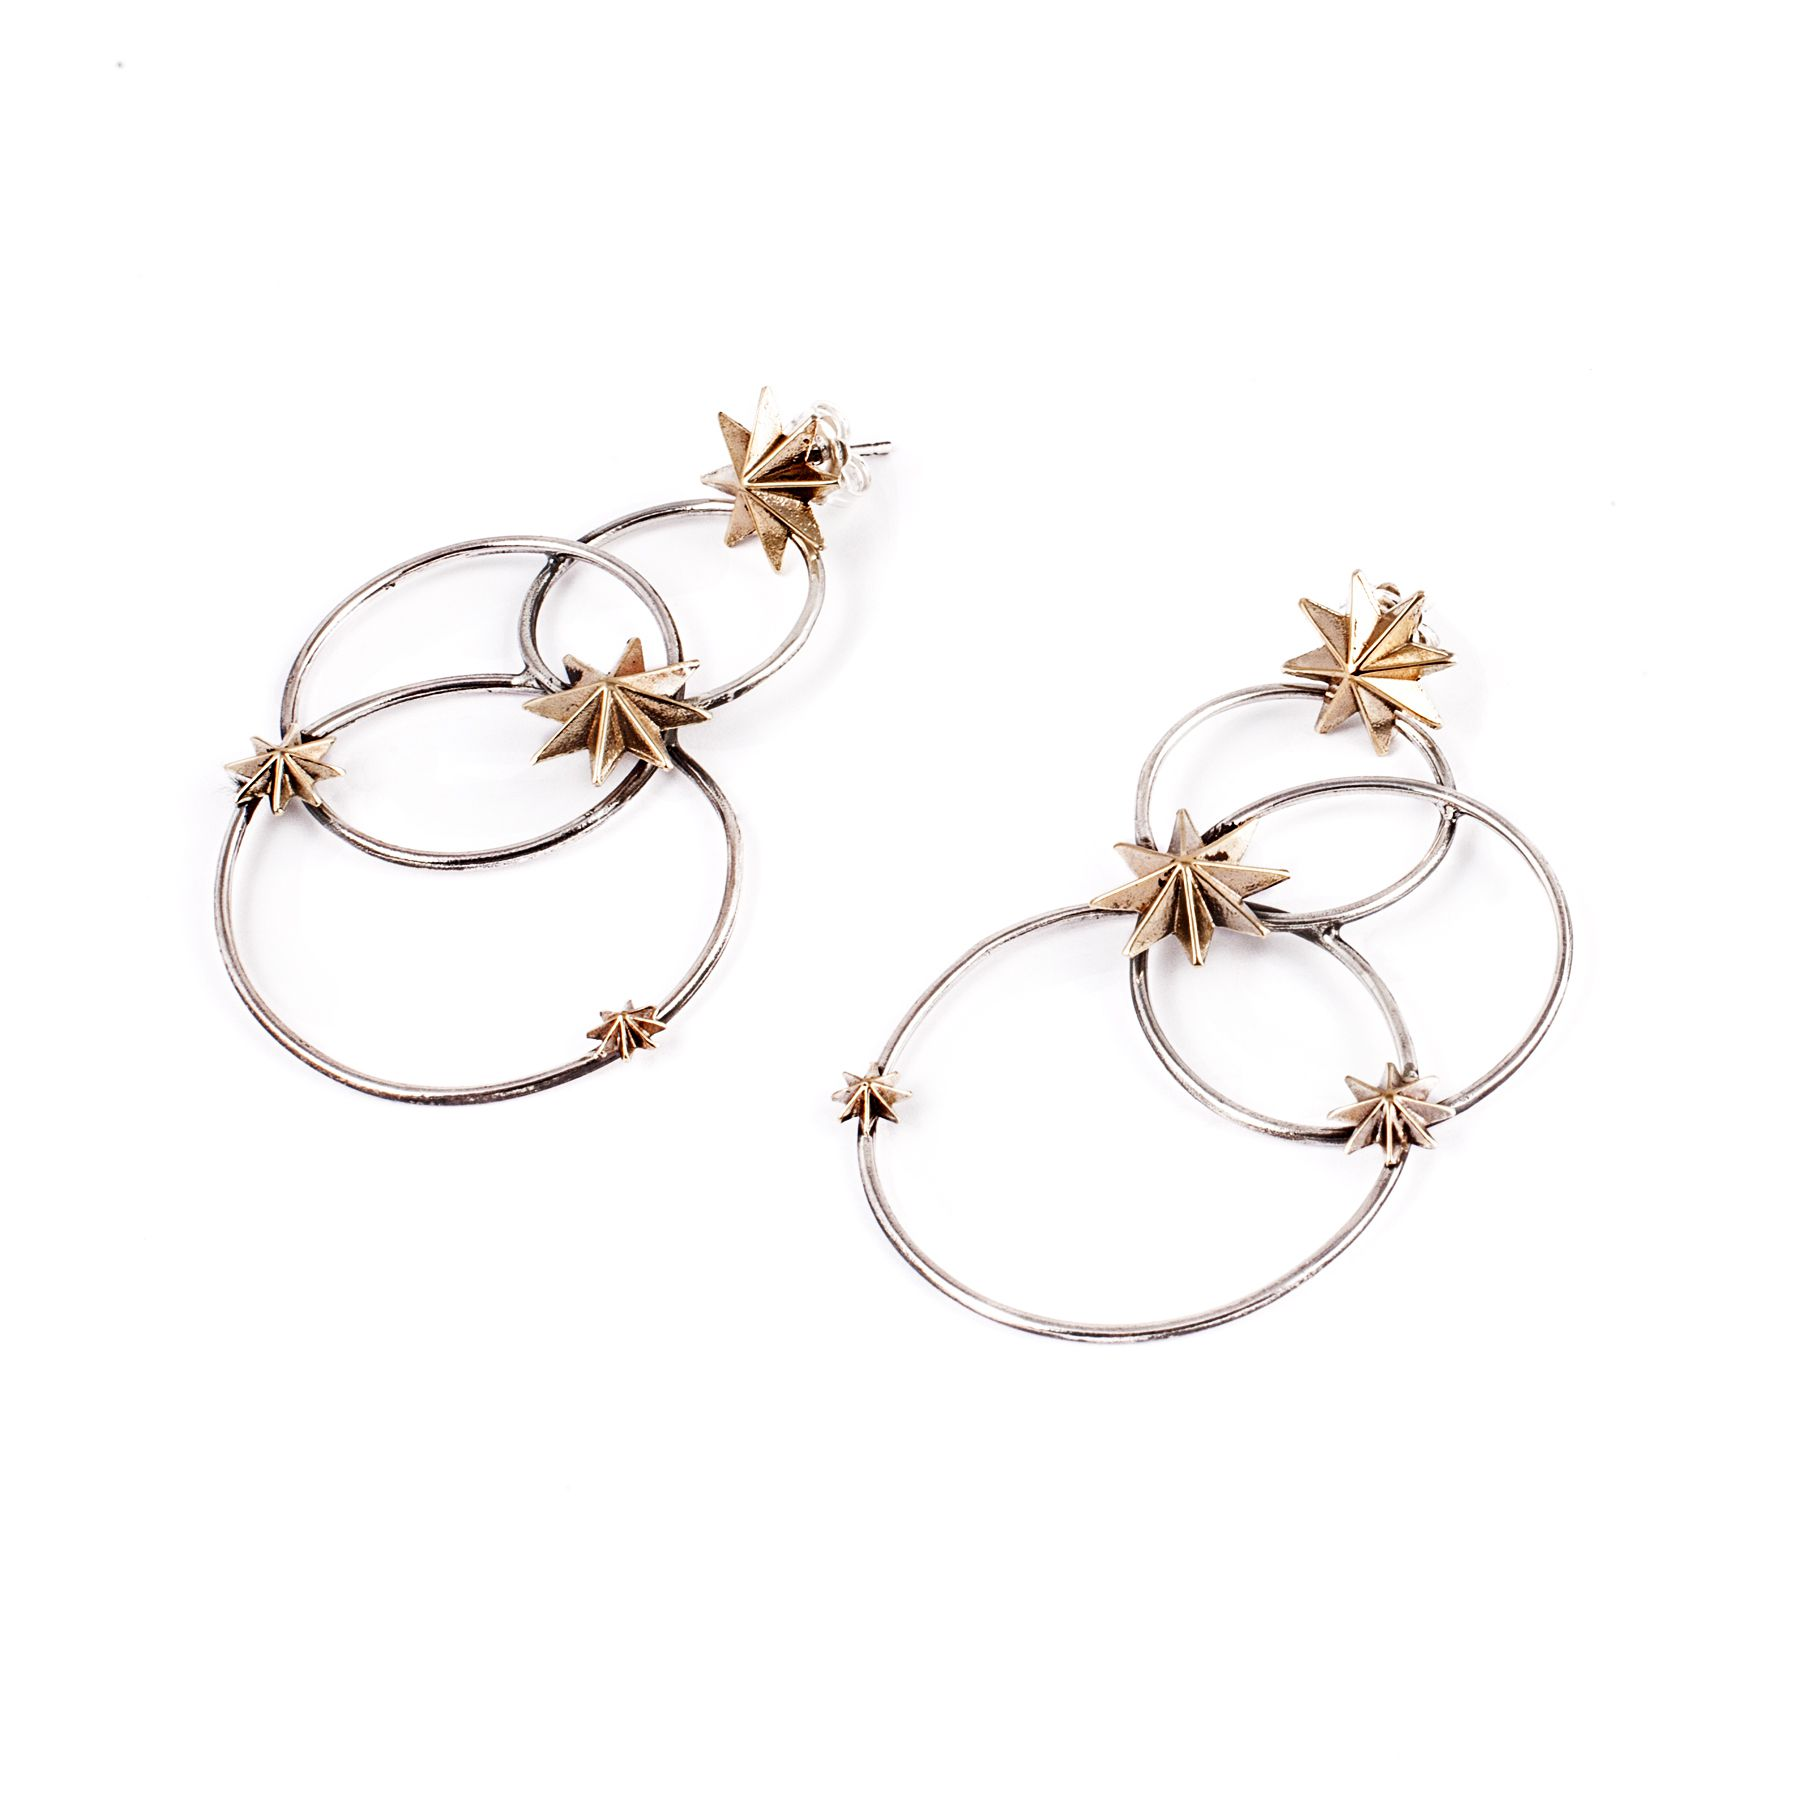 Constellations Earrings in silver and bronze